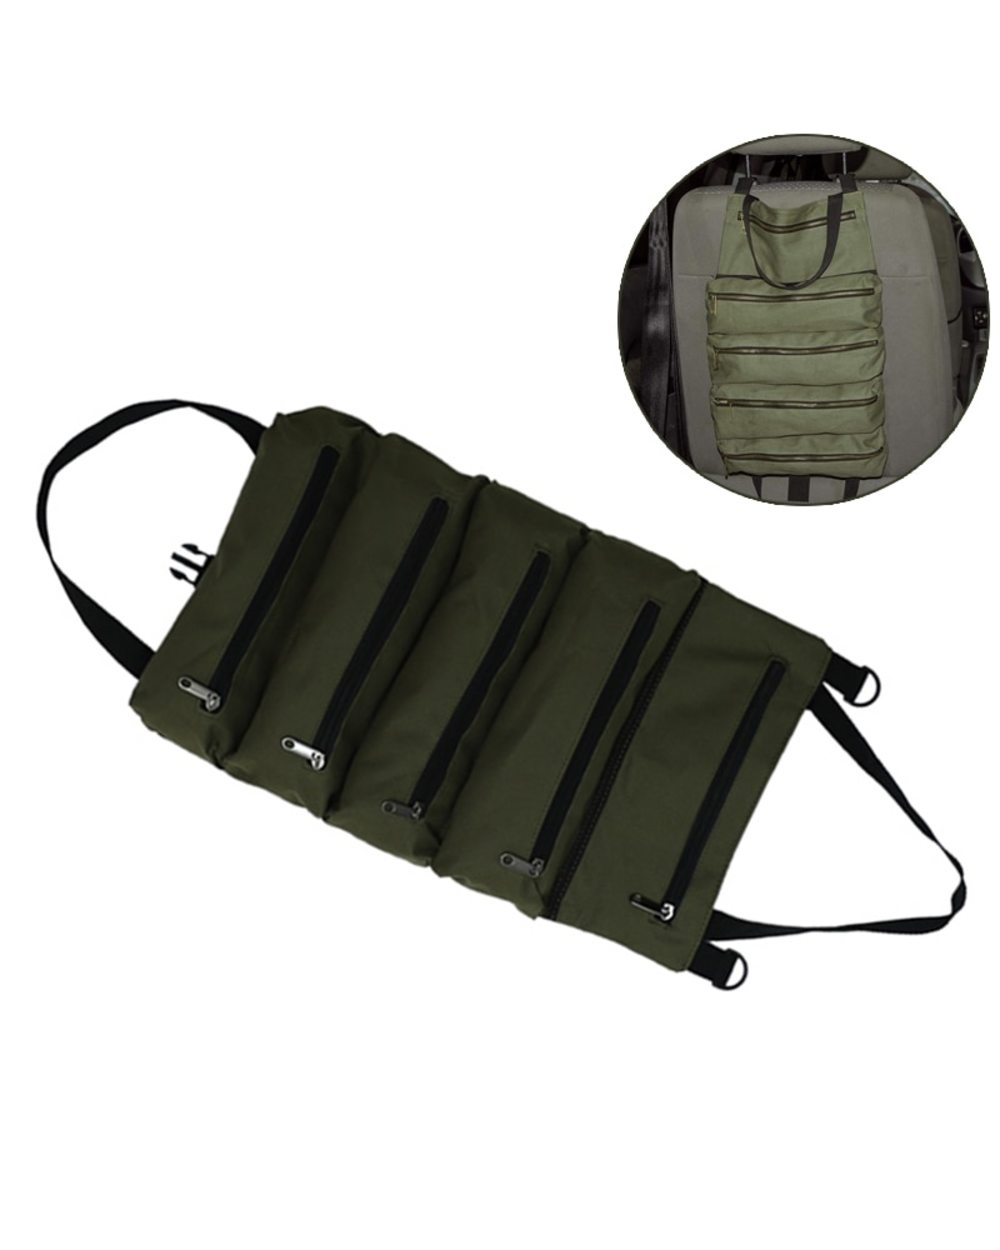 Multi-Purpose Zipper Carrier Roll Up Tote: Best Tool Pouch for Electricians  front-0